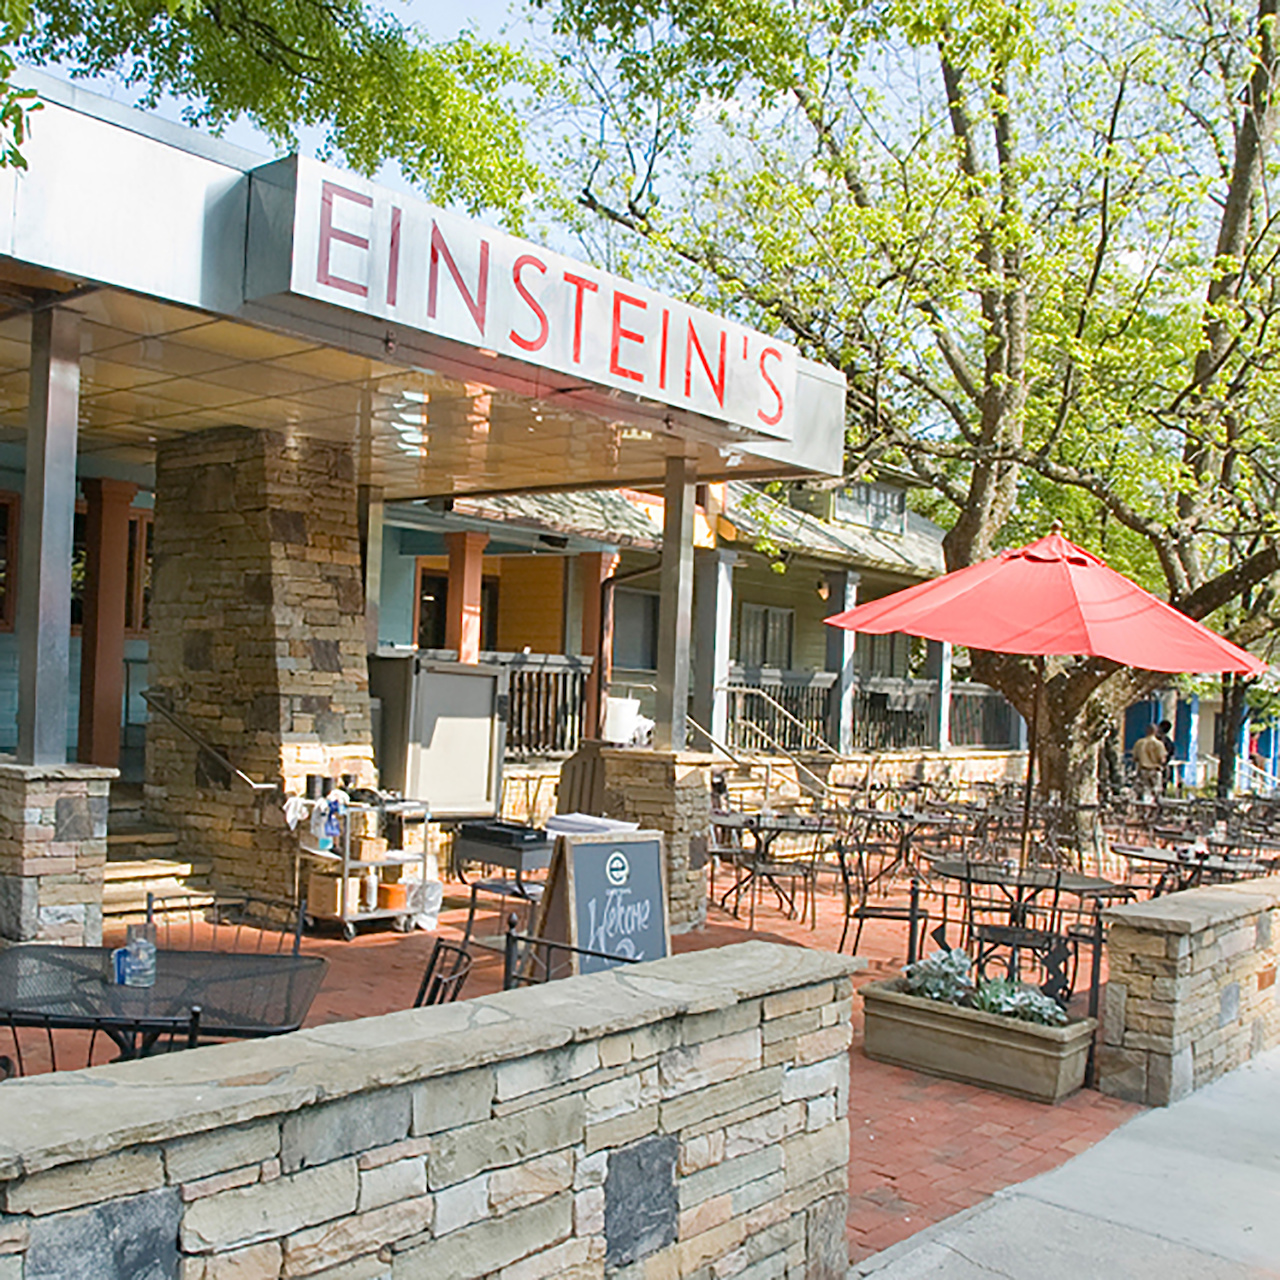 Enjoy the warm weather and a delectable mimosa on the Einstein's patio.